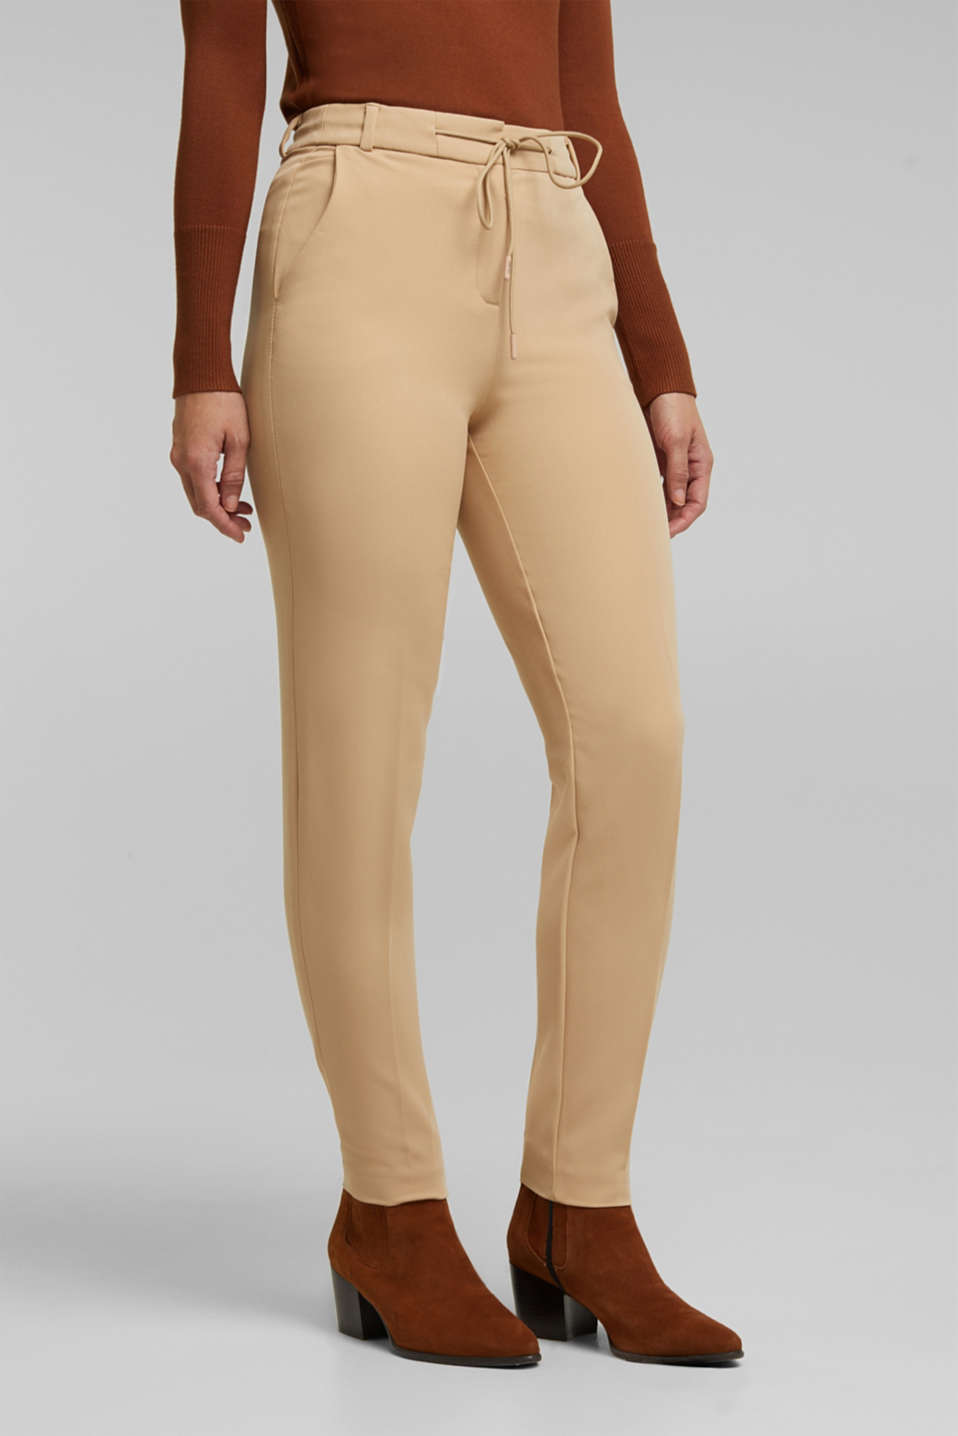 Esprit - Stretch trousers with an elasticated waistband